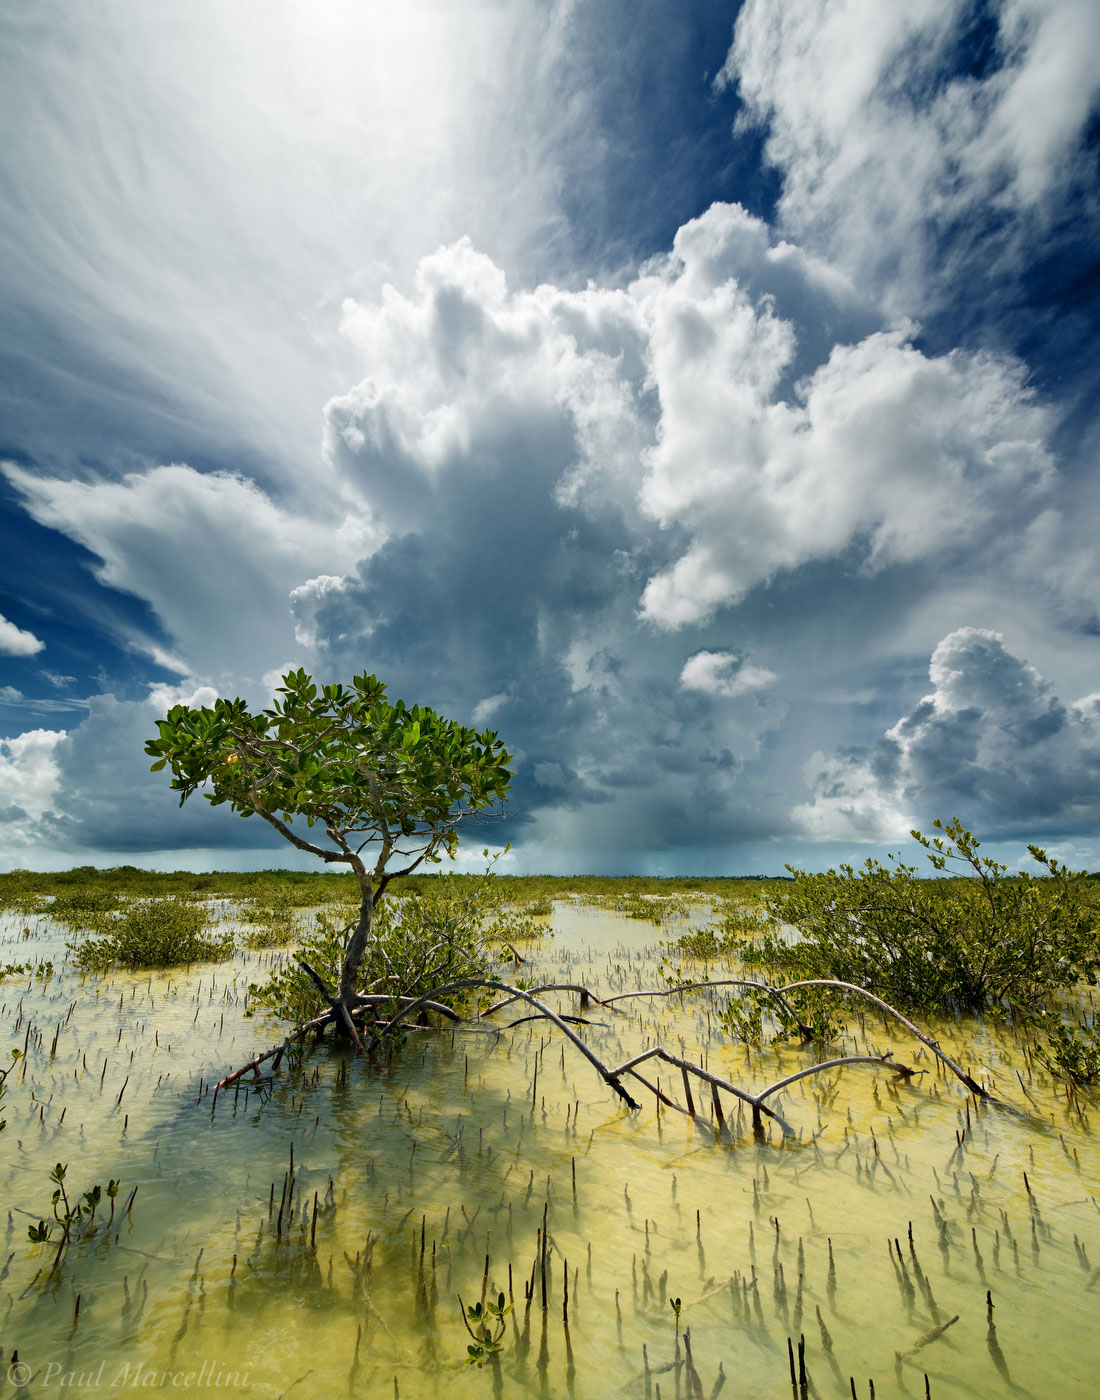 Big Pine Key, Florida Keys, Florida, key deer refuge, mangrove, keys, storm, south florida, nature, photography, photo